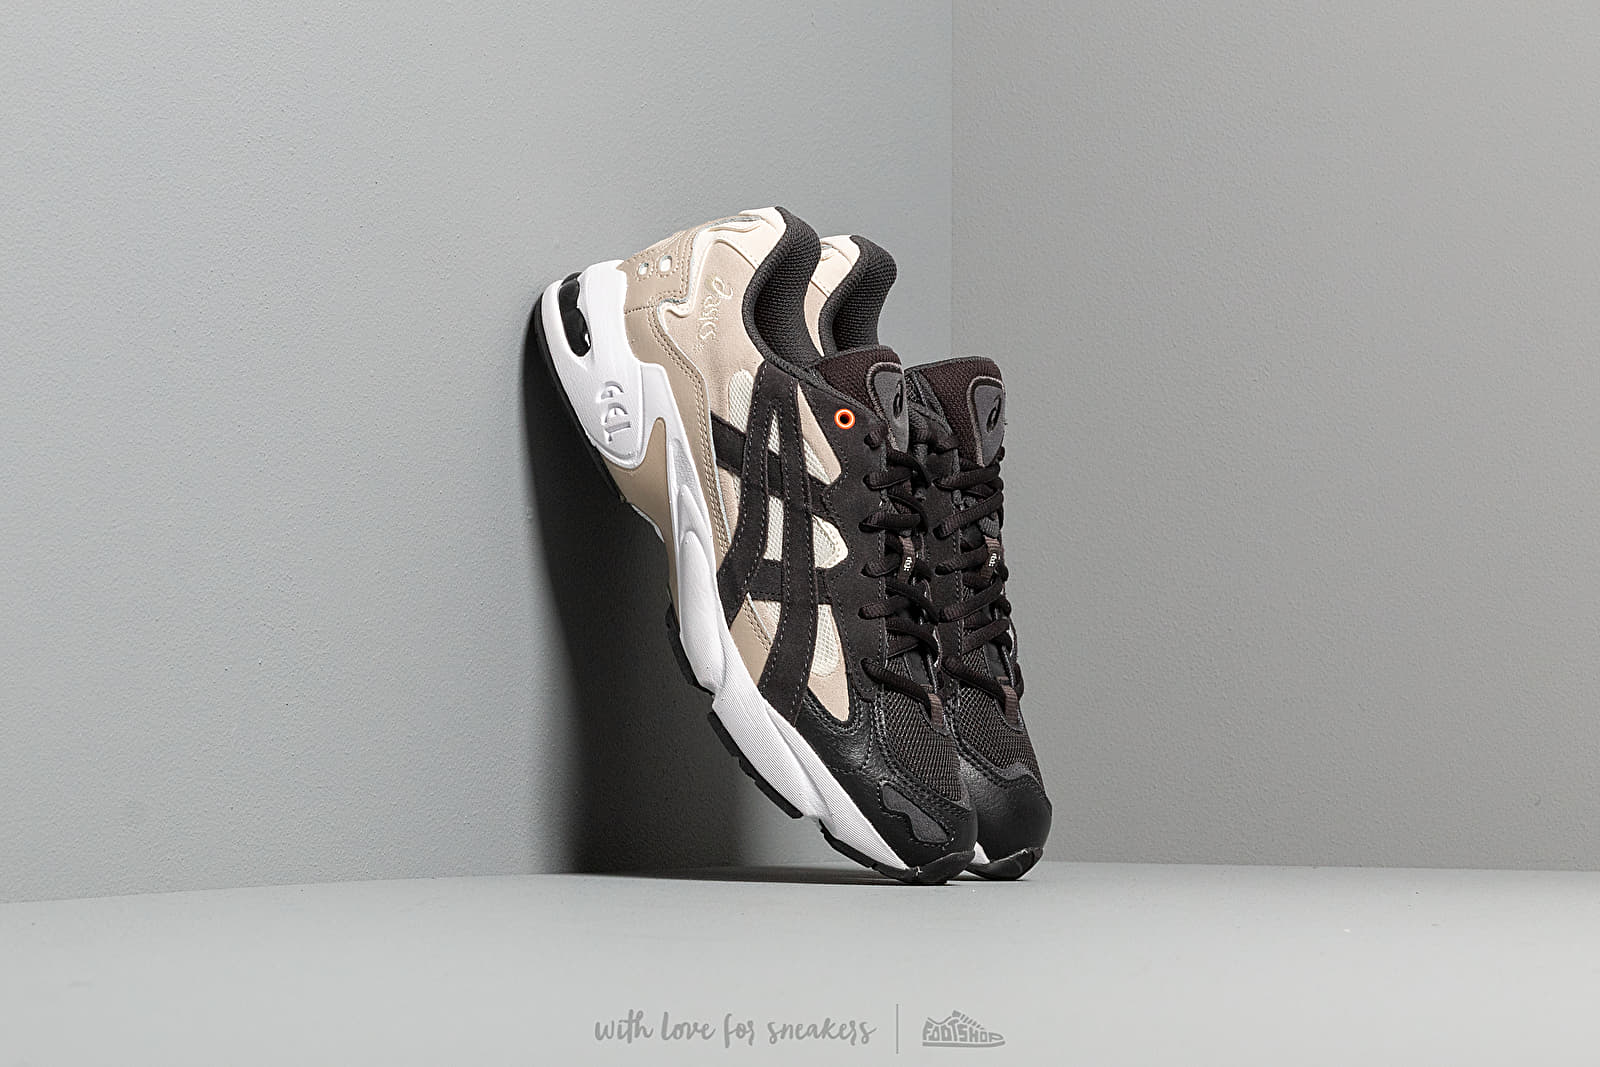 the best attitude 6fc43 bfe66 asics x Reigning Champ Gel-Kayano 5 OG Cream/ Phantom | Footshop